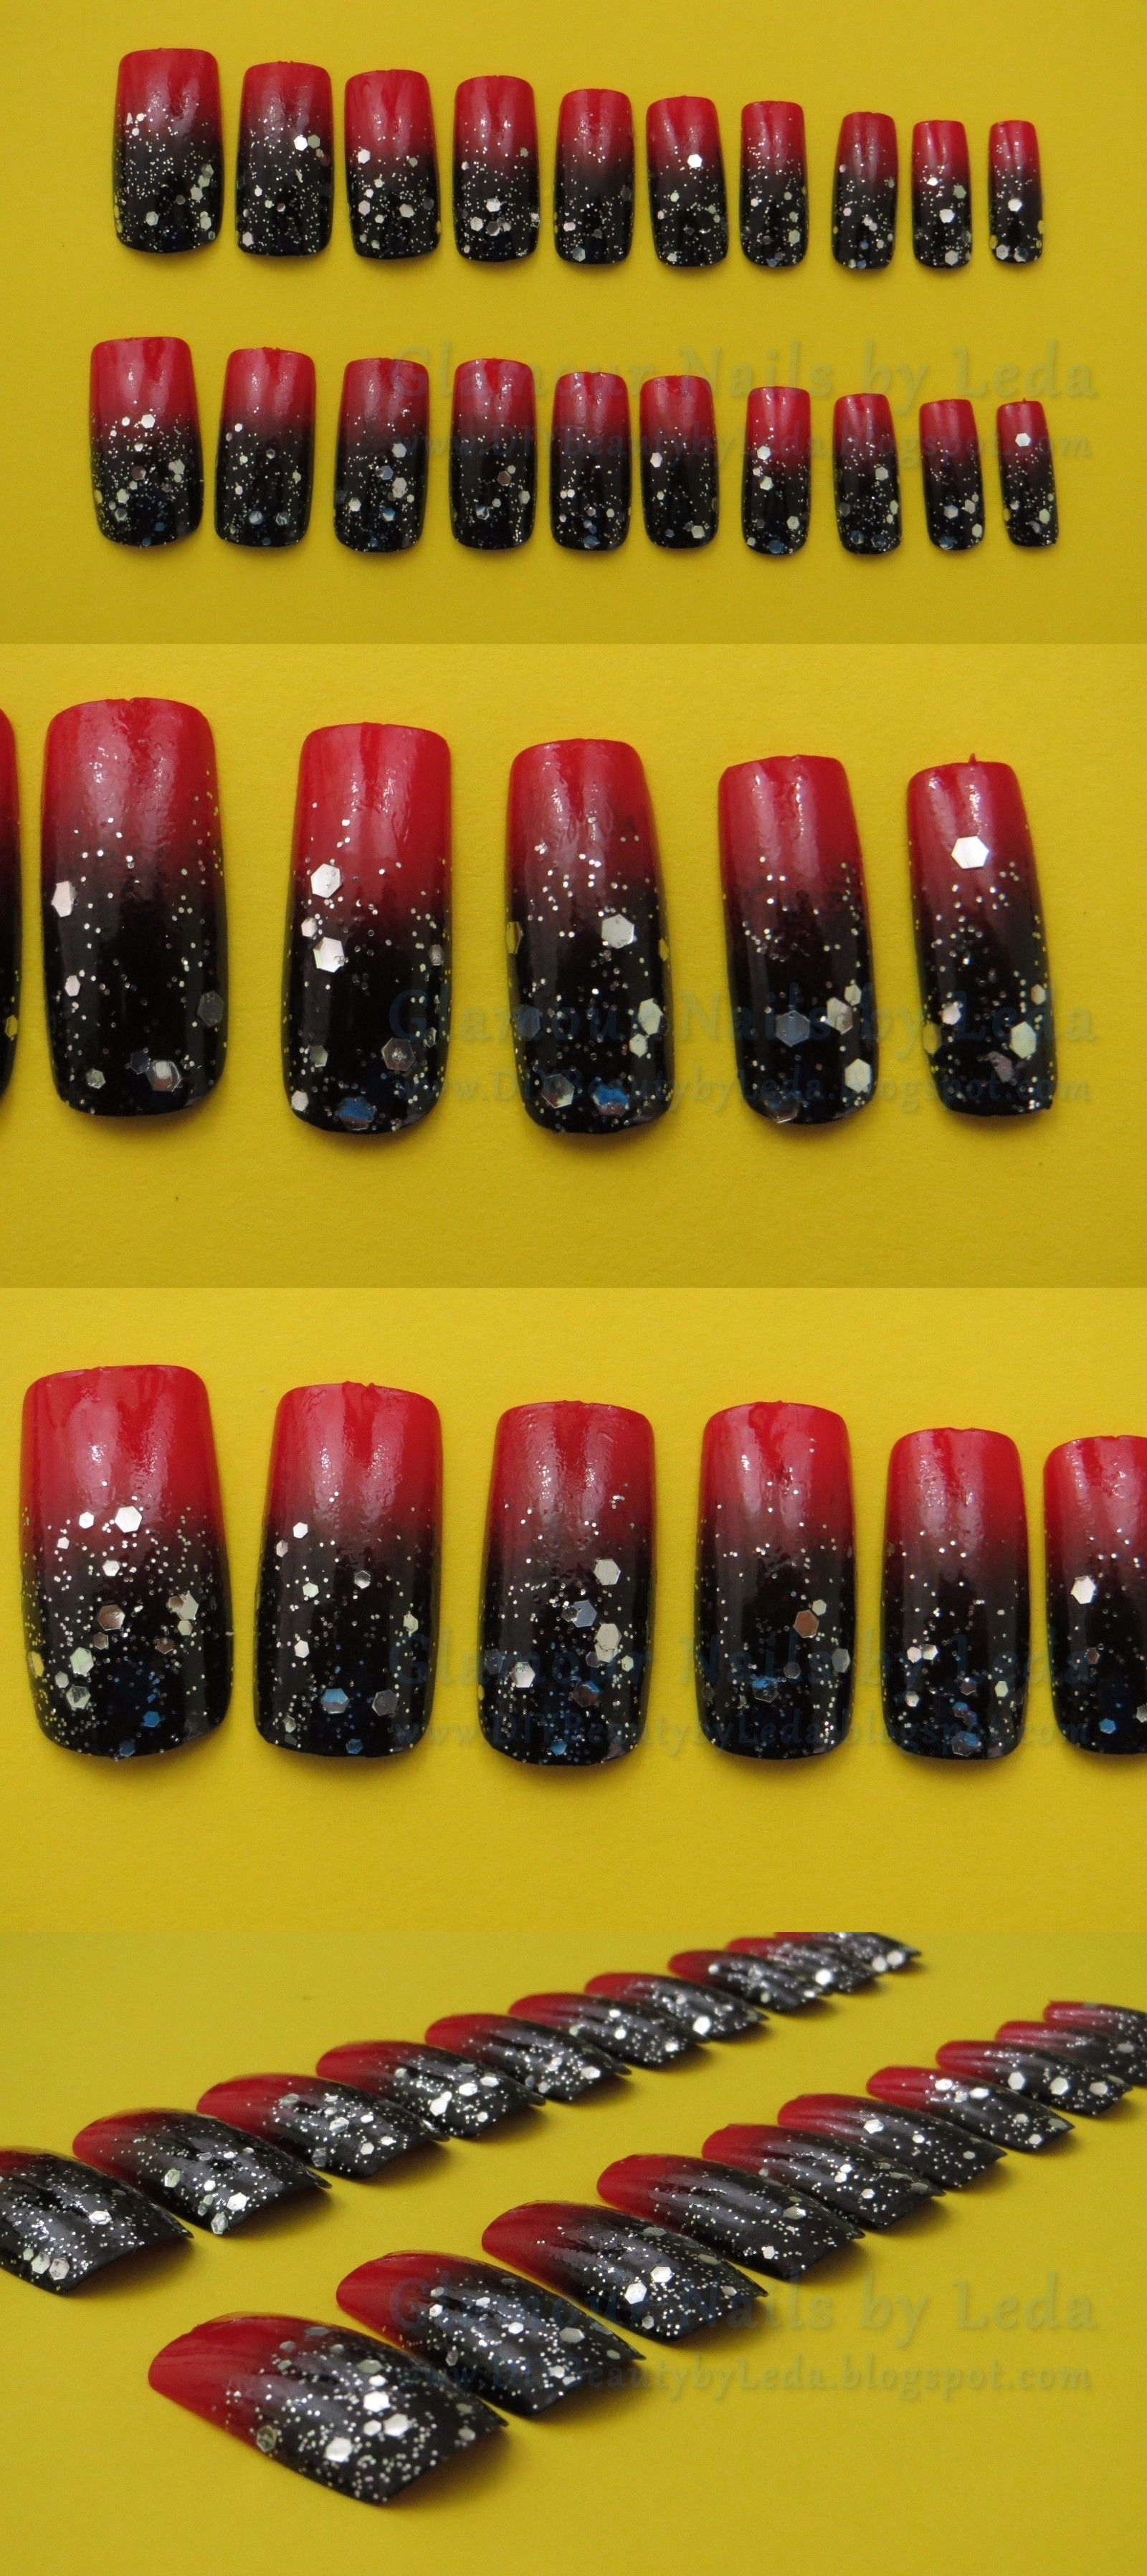 Impress press on manicure nails my style pinterest - Artificial Nail Tips 20 Full Well Medium Square Nails Black To Red Ombre With Silver